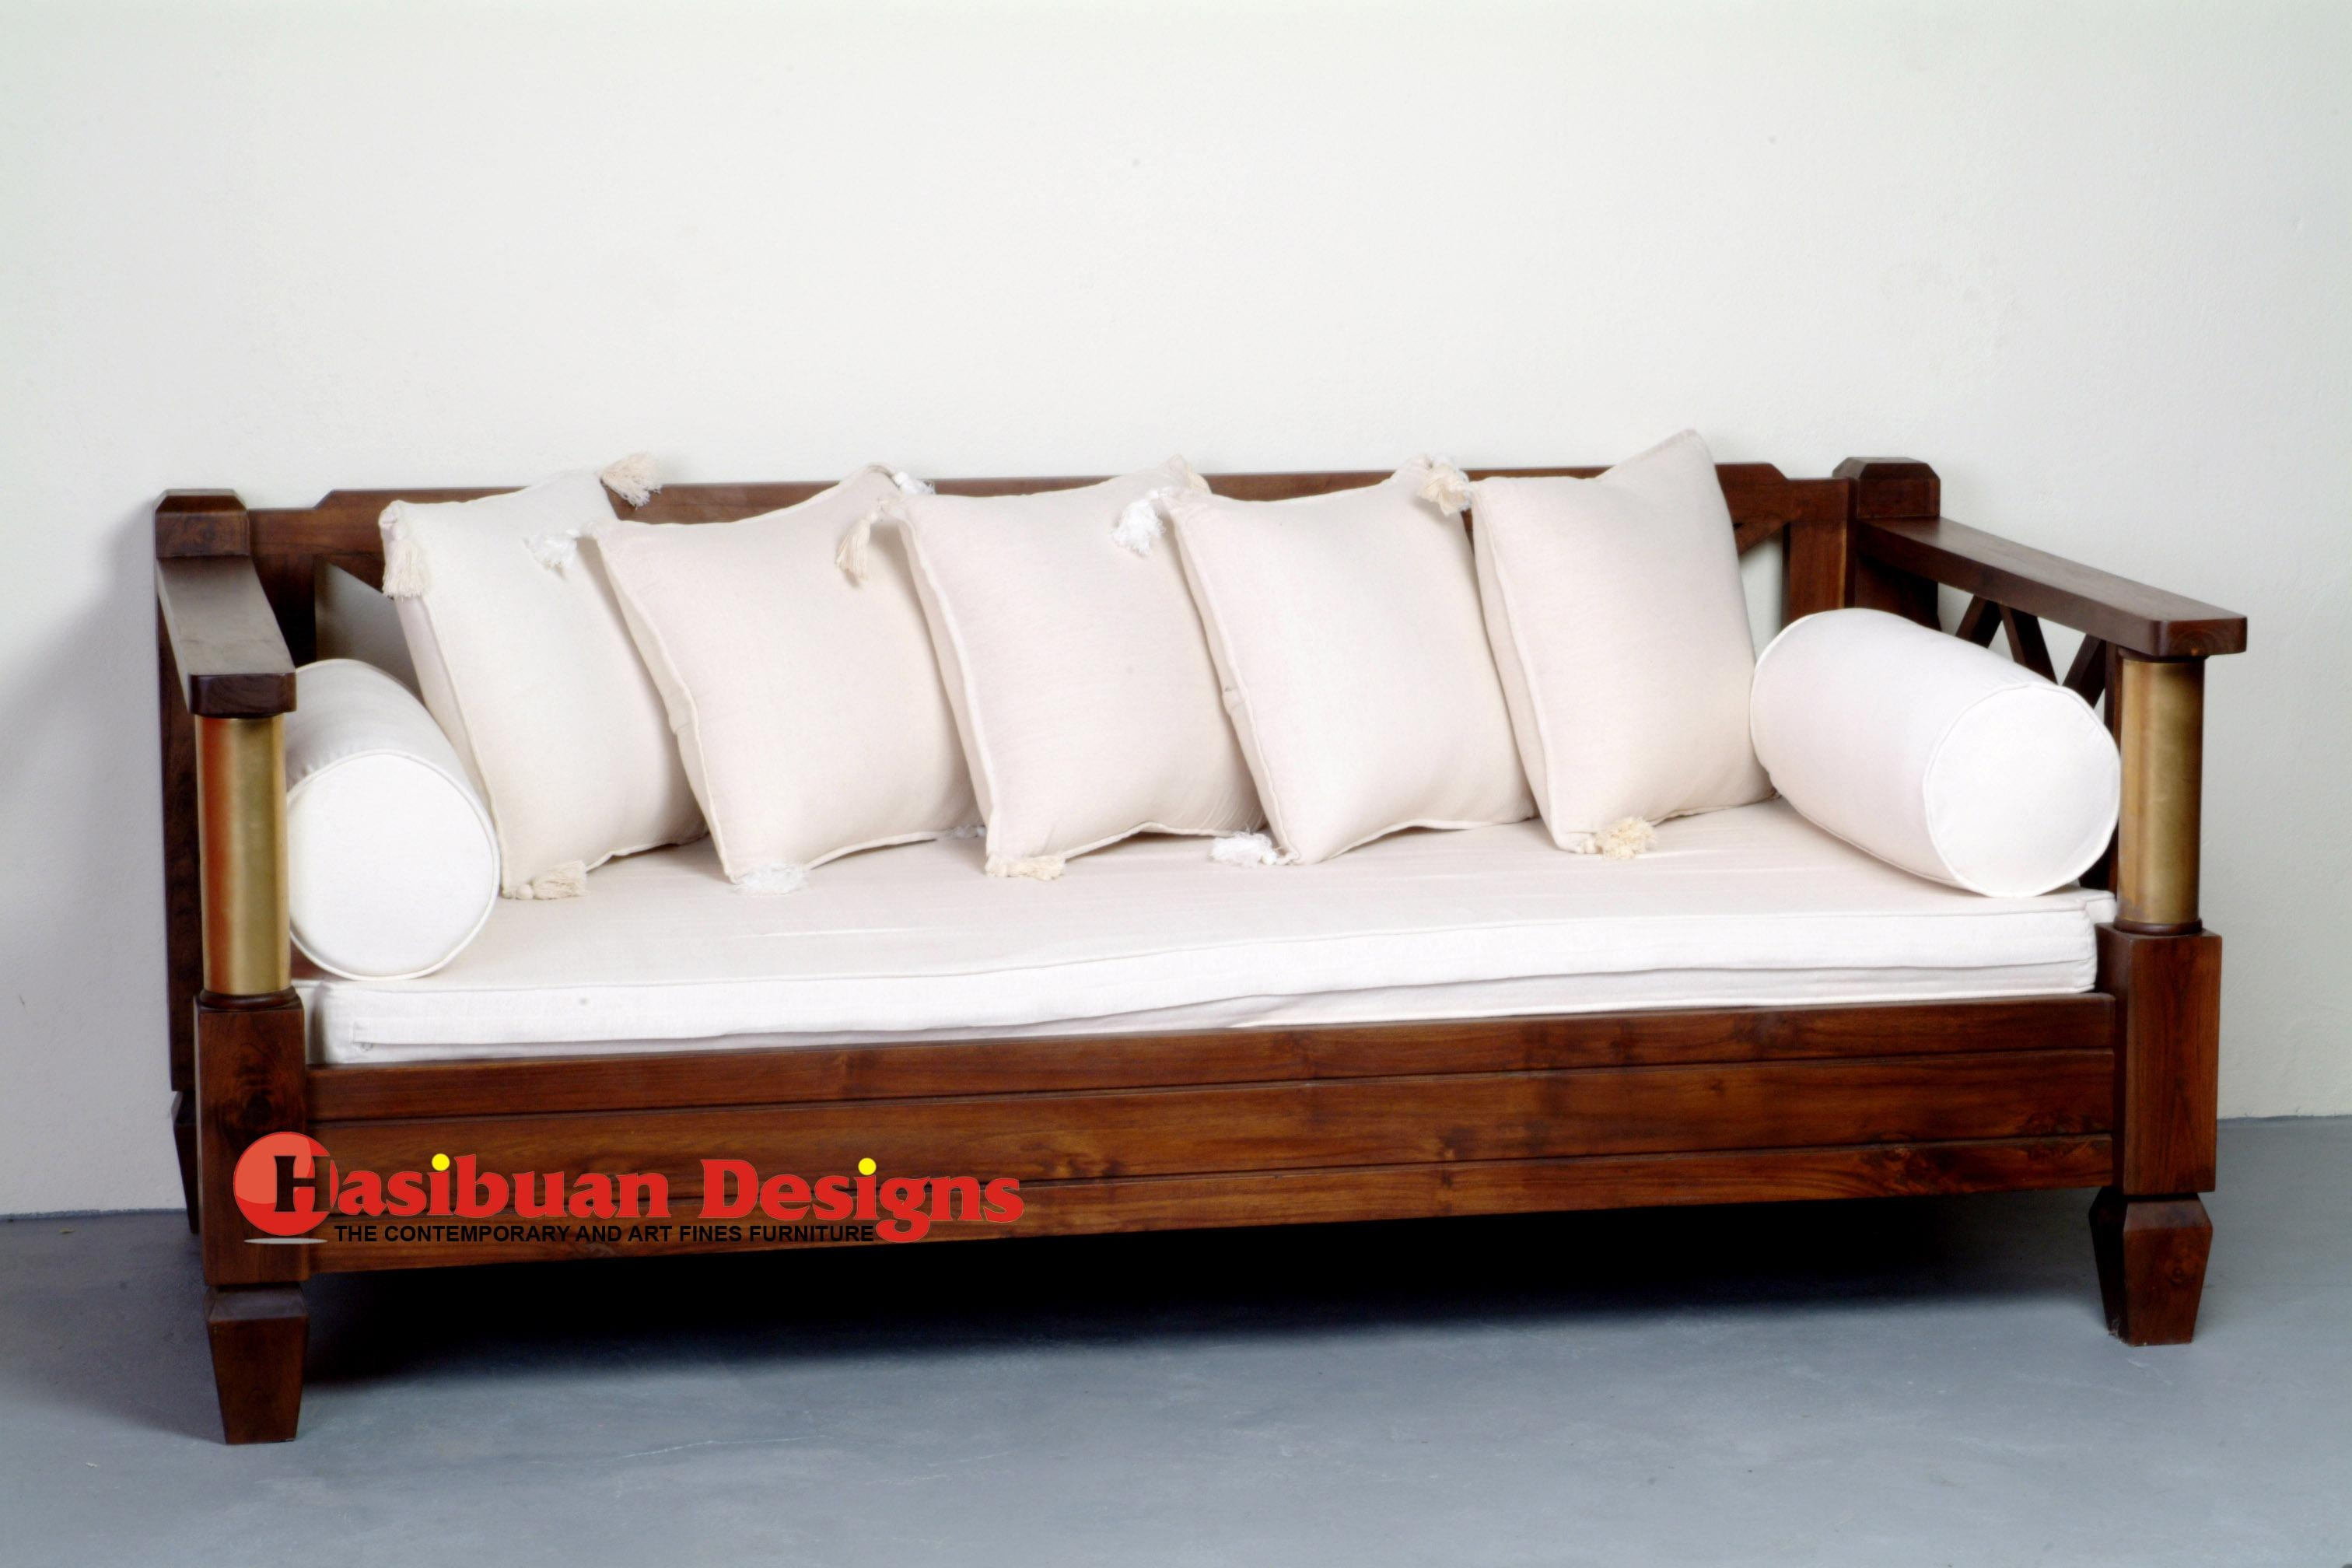 Best Prefect Designs To Sit Down Daybed Sofa | Bedroomi In Sofa Day Beds (View 3 of 20)